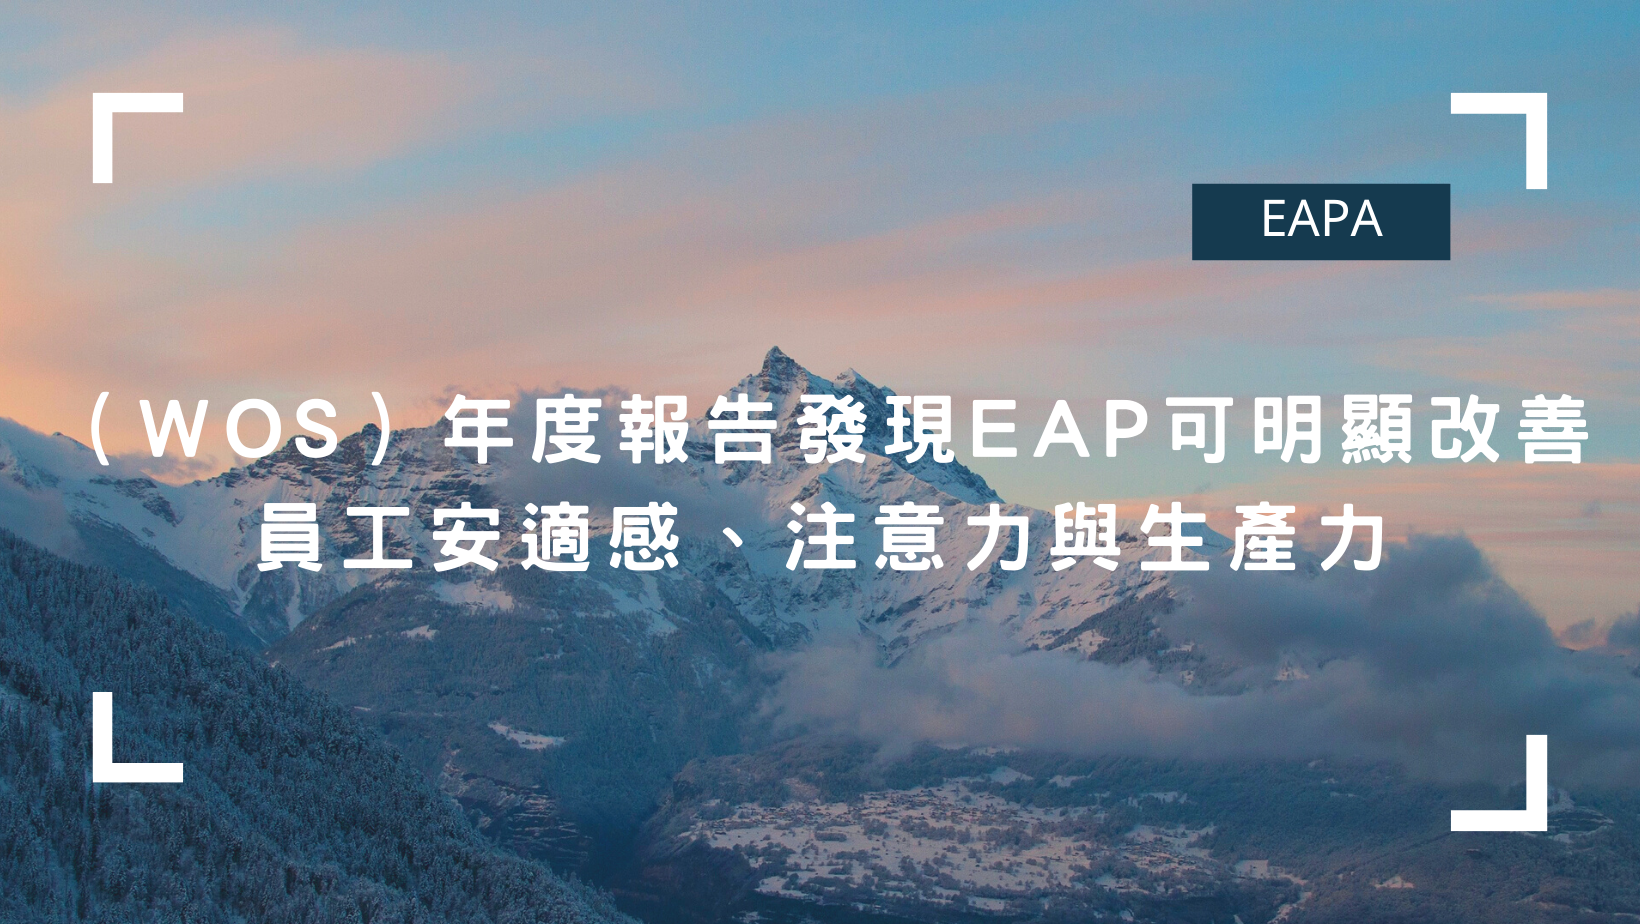 EAP counseling significantly improves employee wellbeing, ability to concentrate and productivity.